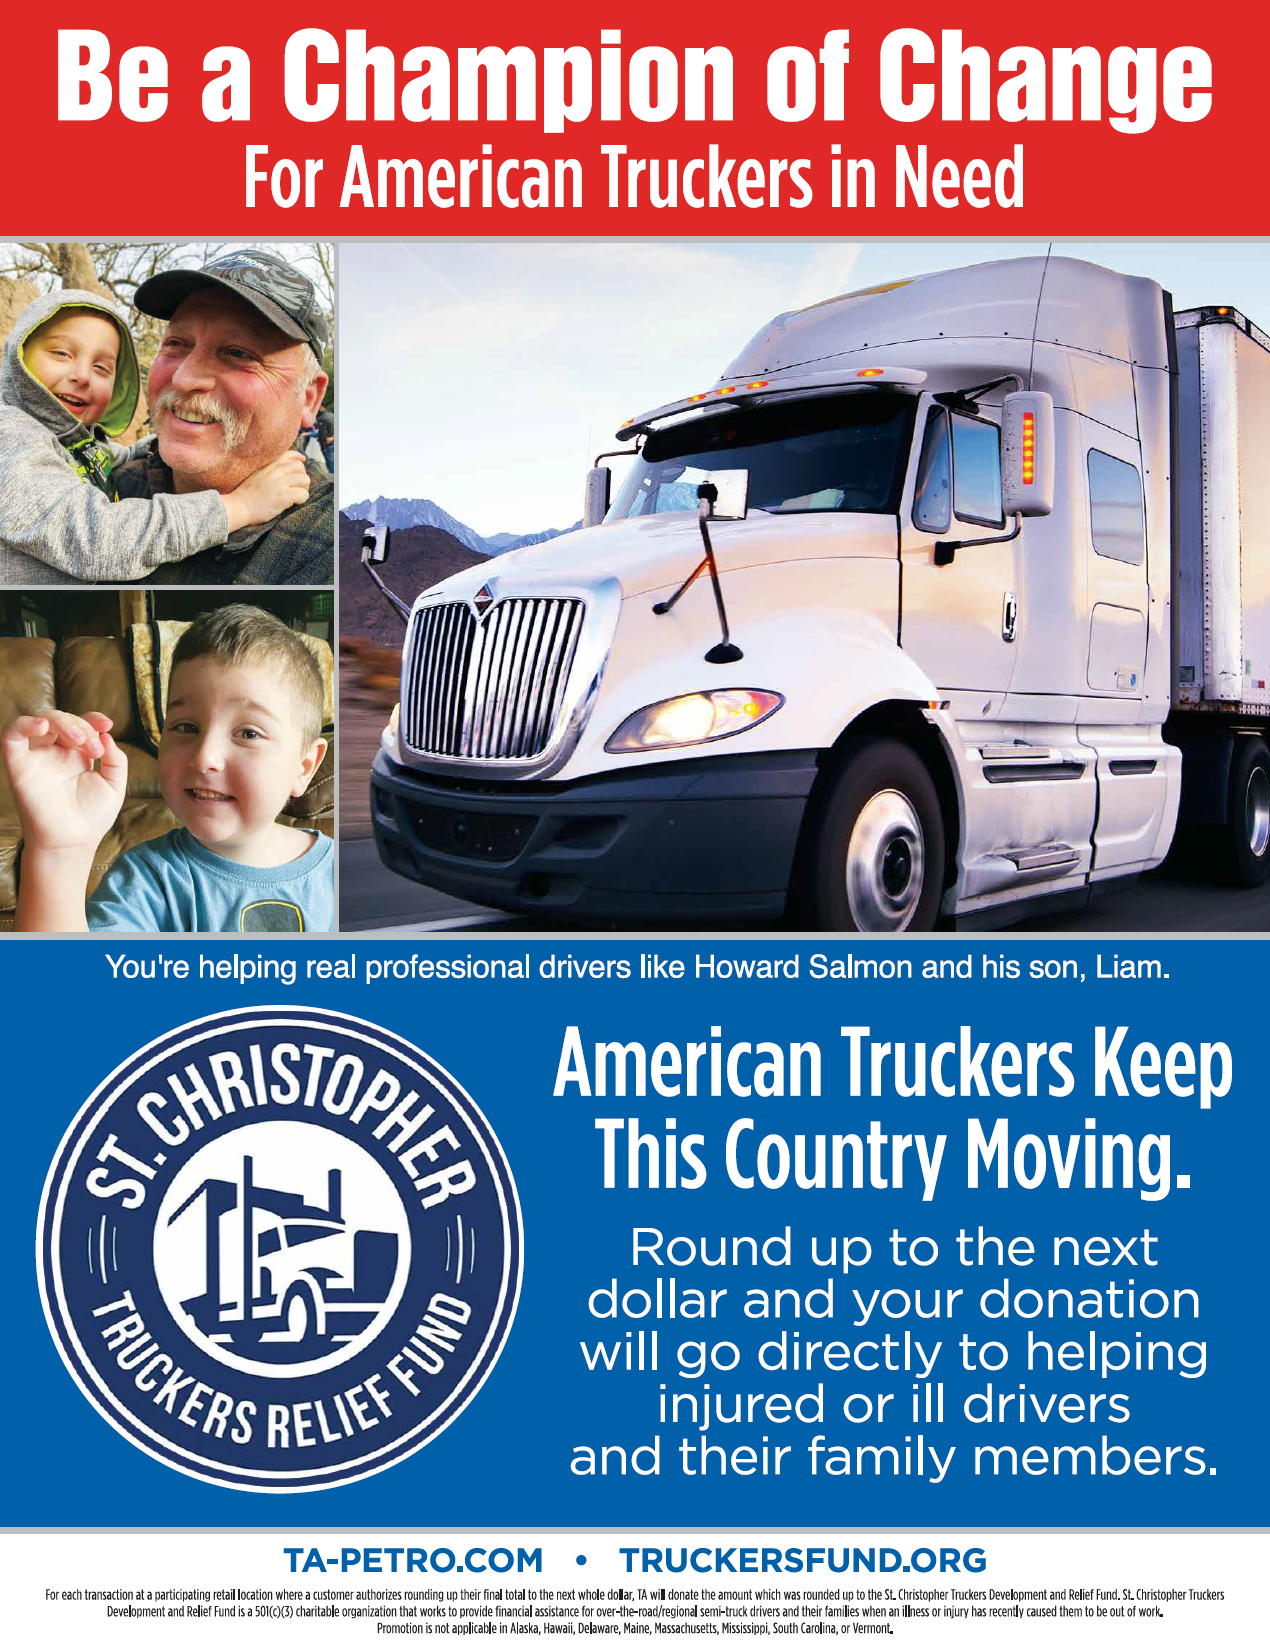 """St. Christopher's Truckers Relief Fund """"Be a Champion of Change For American Truckers in Need"""" flyer"""